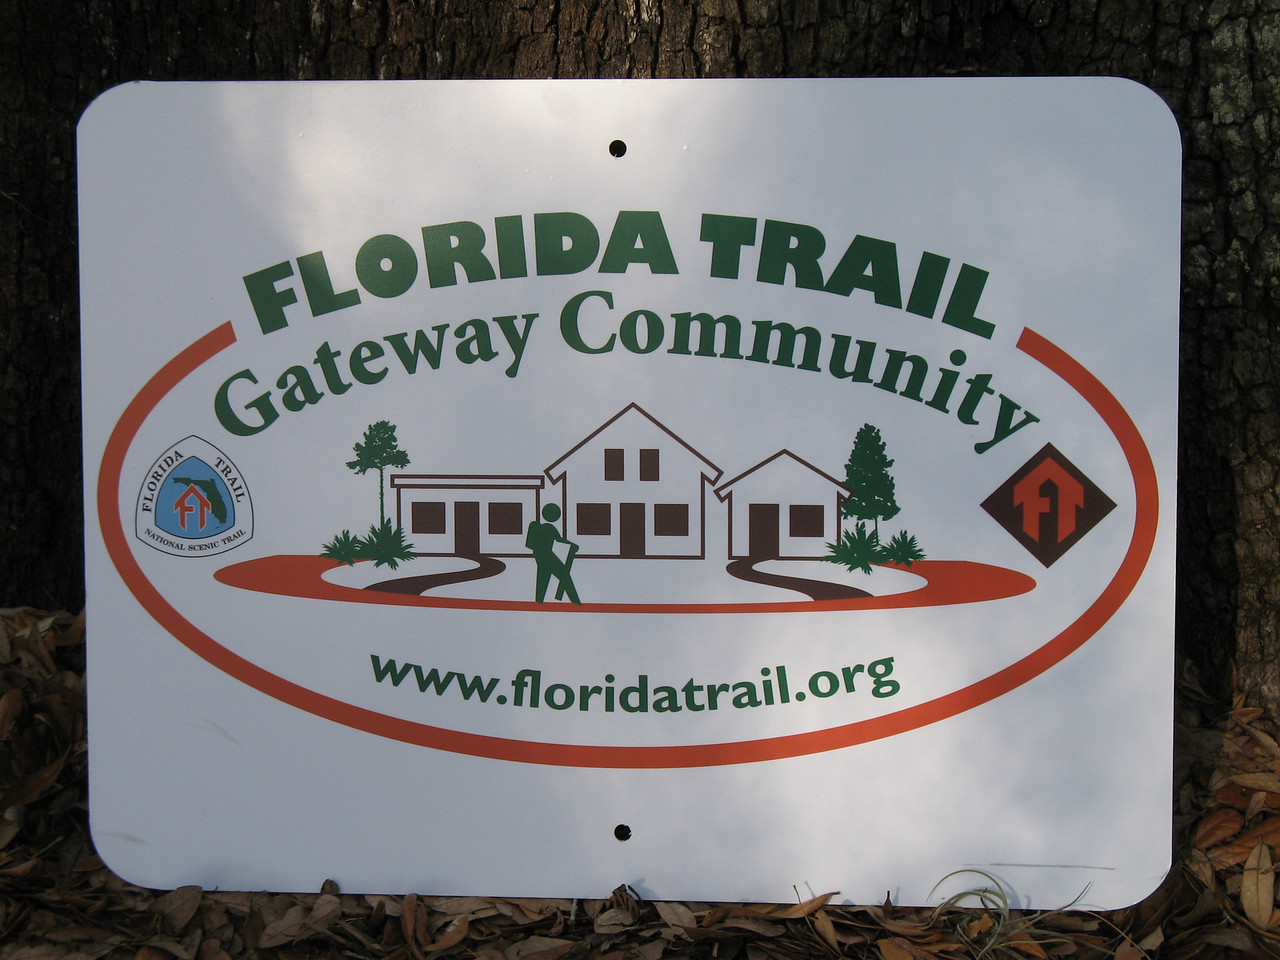 Gateway Community road sign